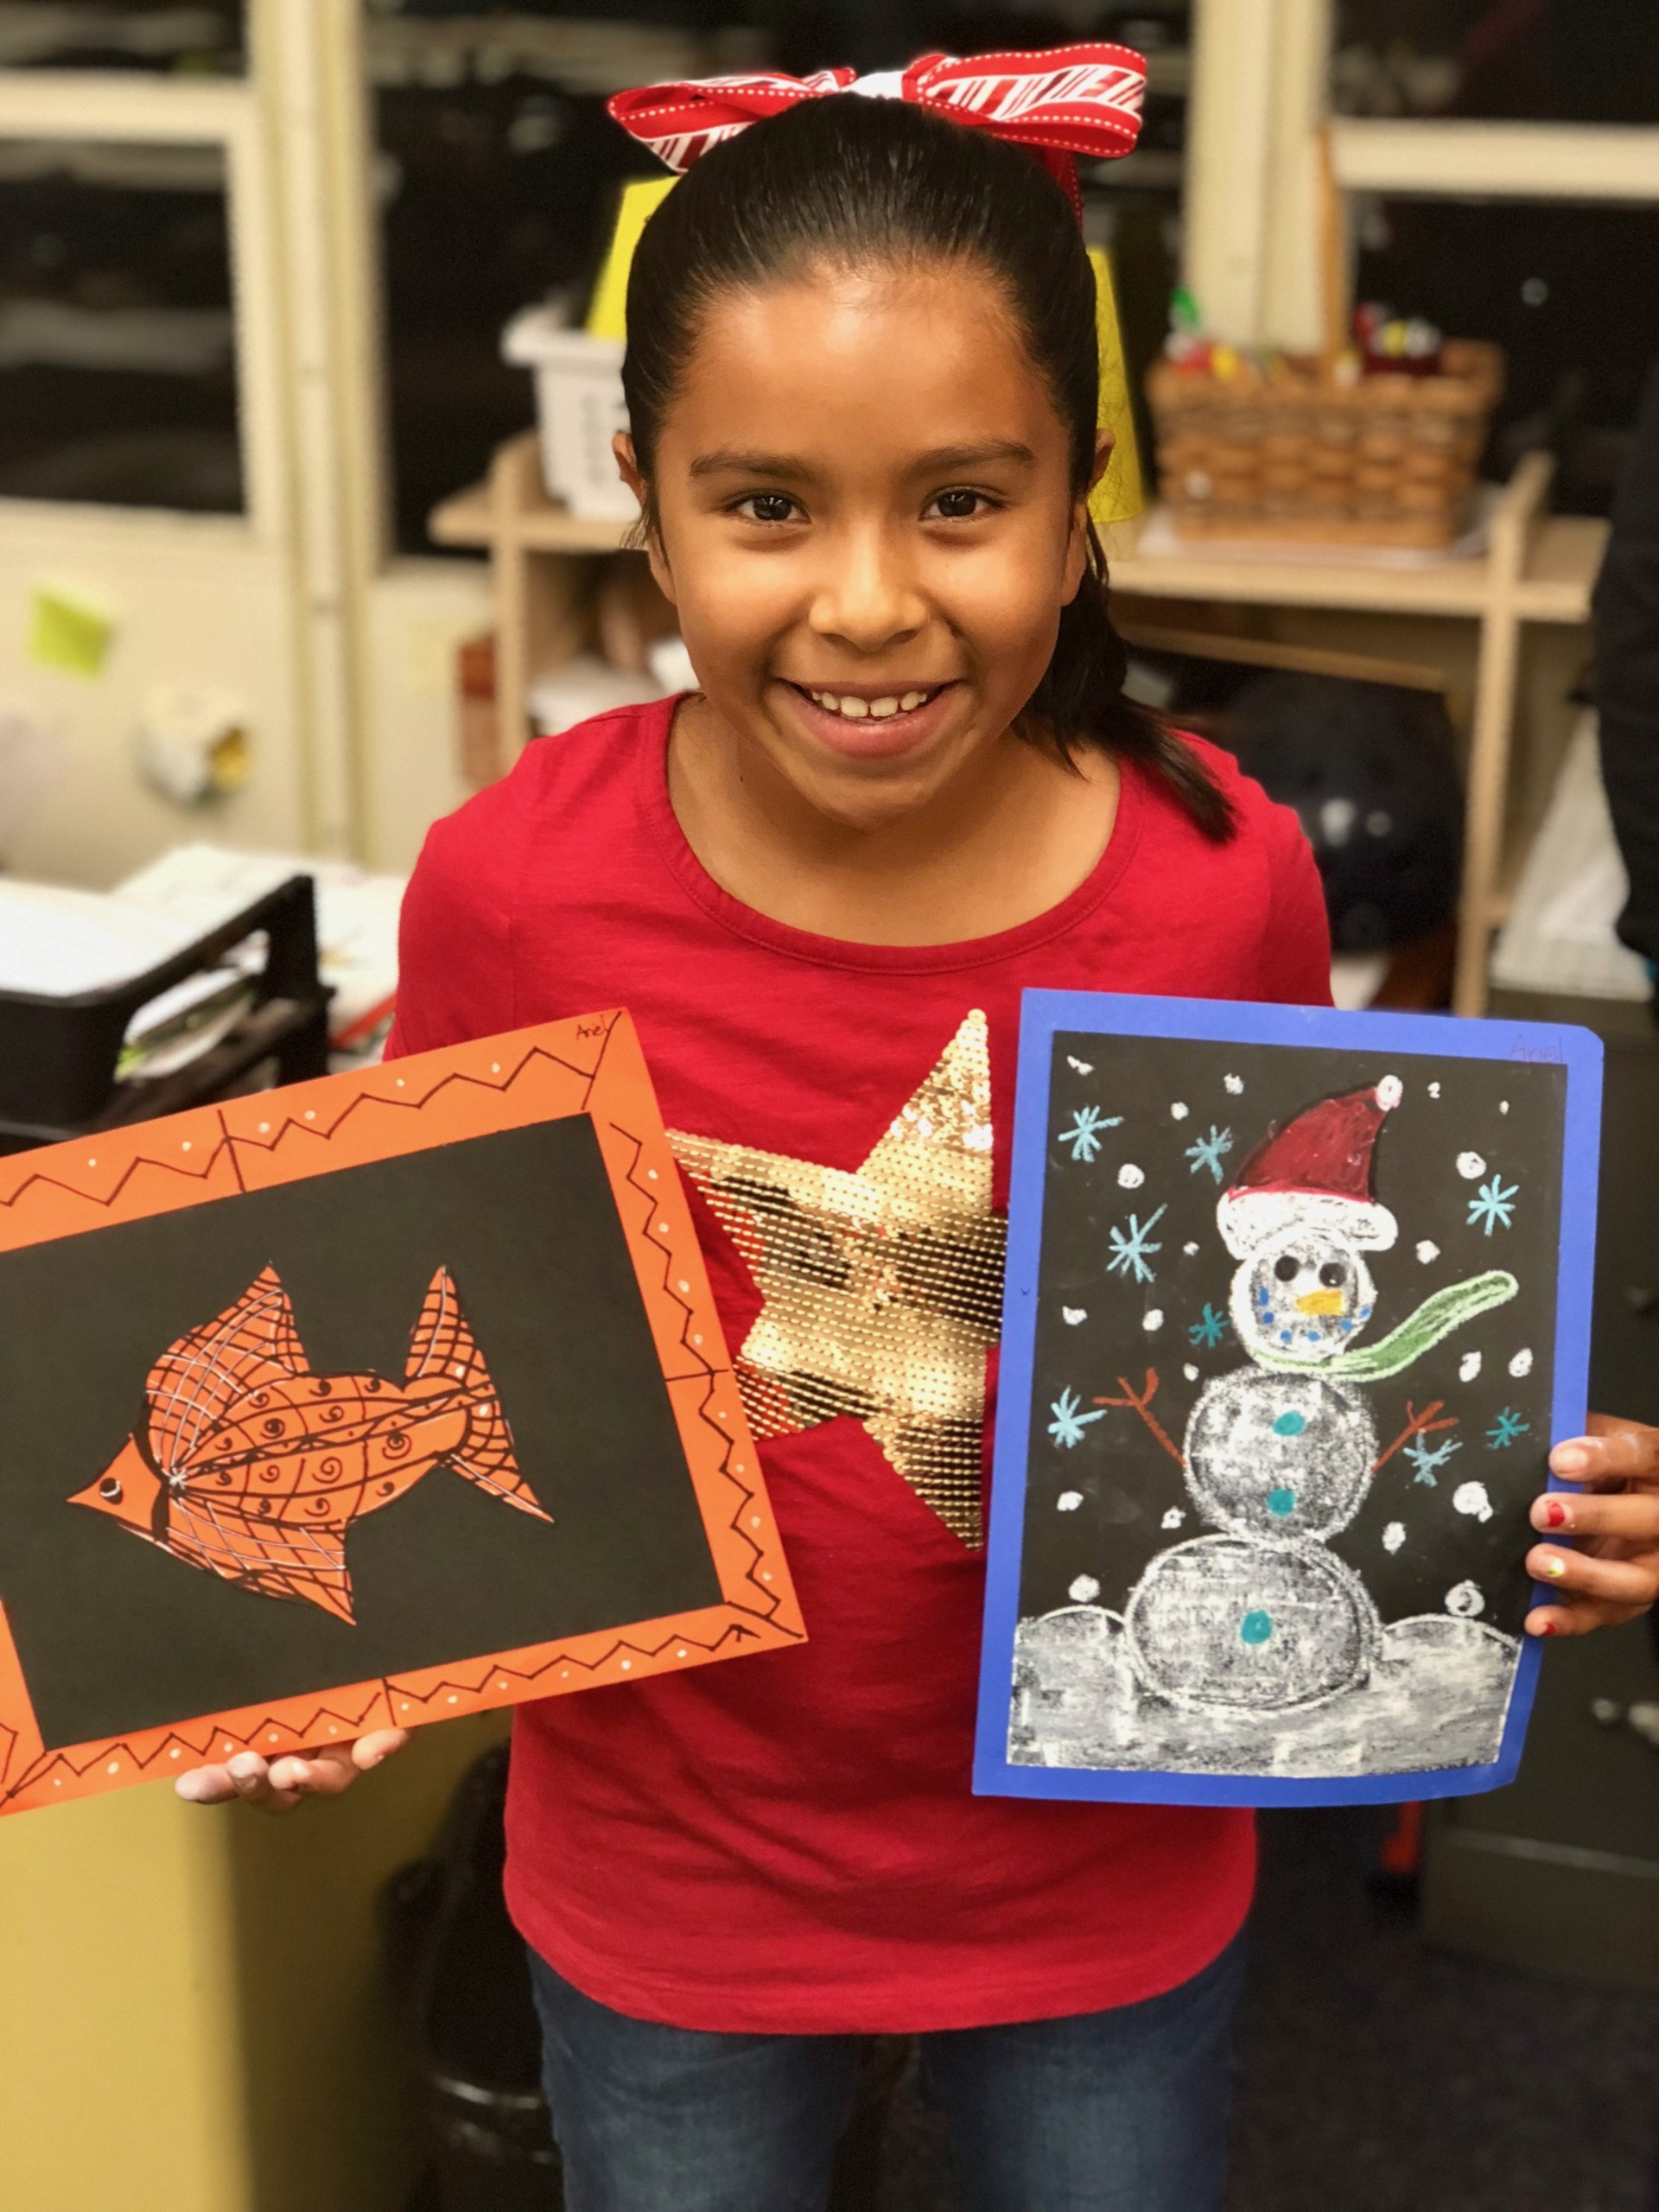 A girl showing her drawings of a fish and a snowman.